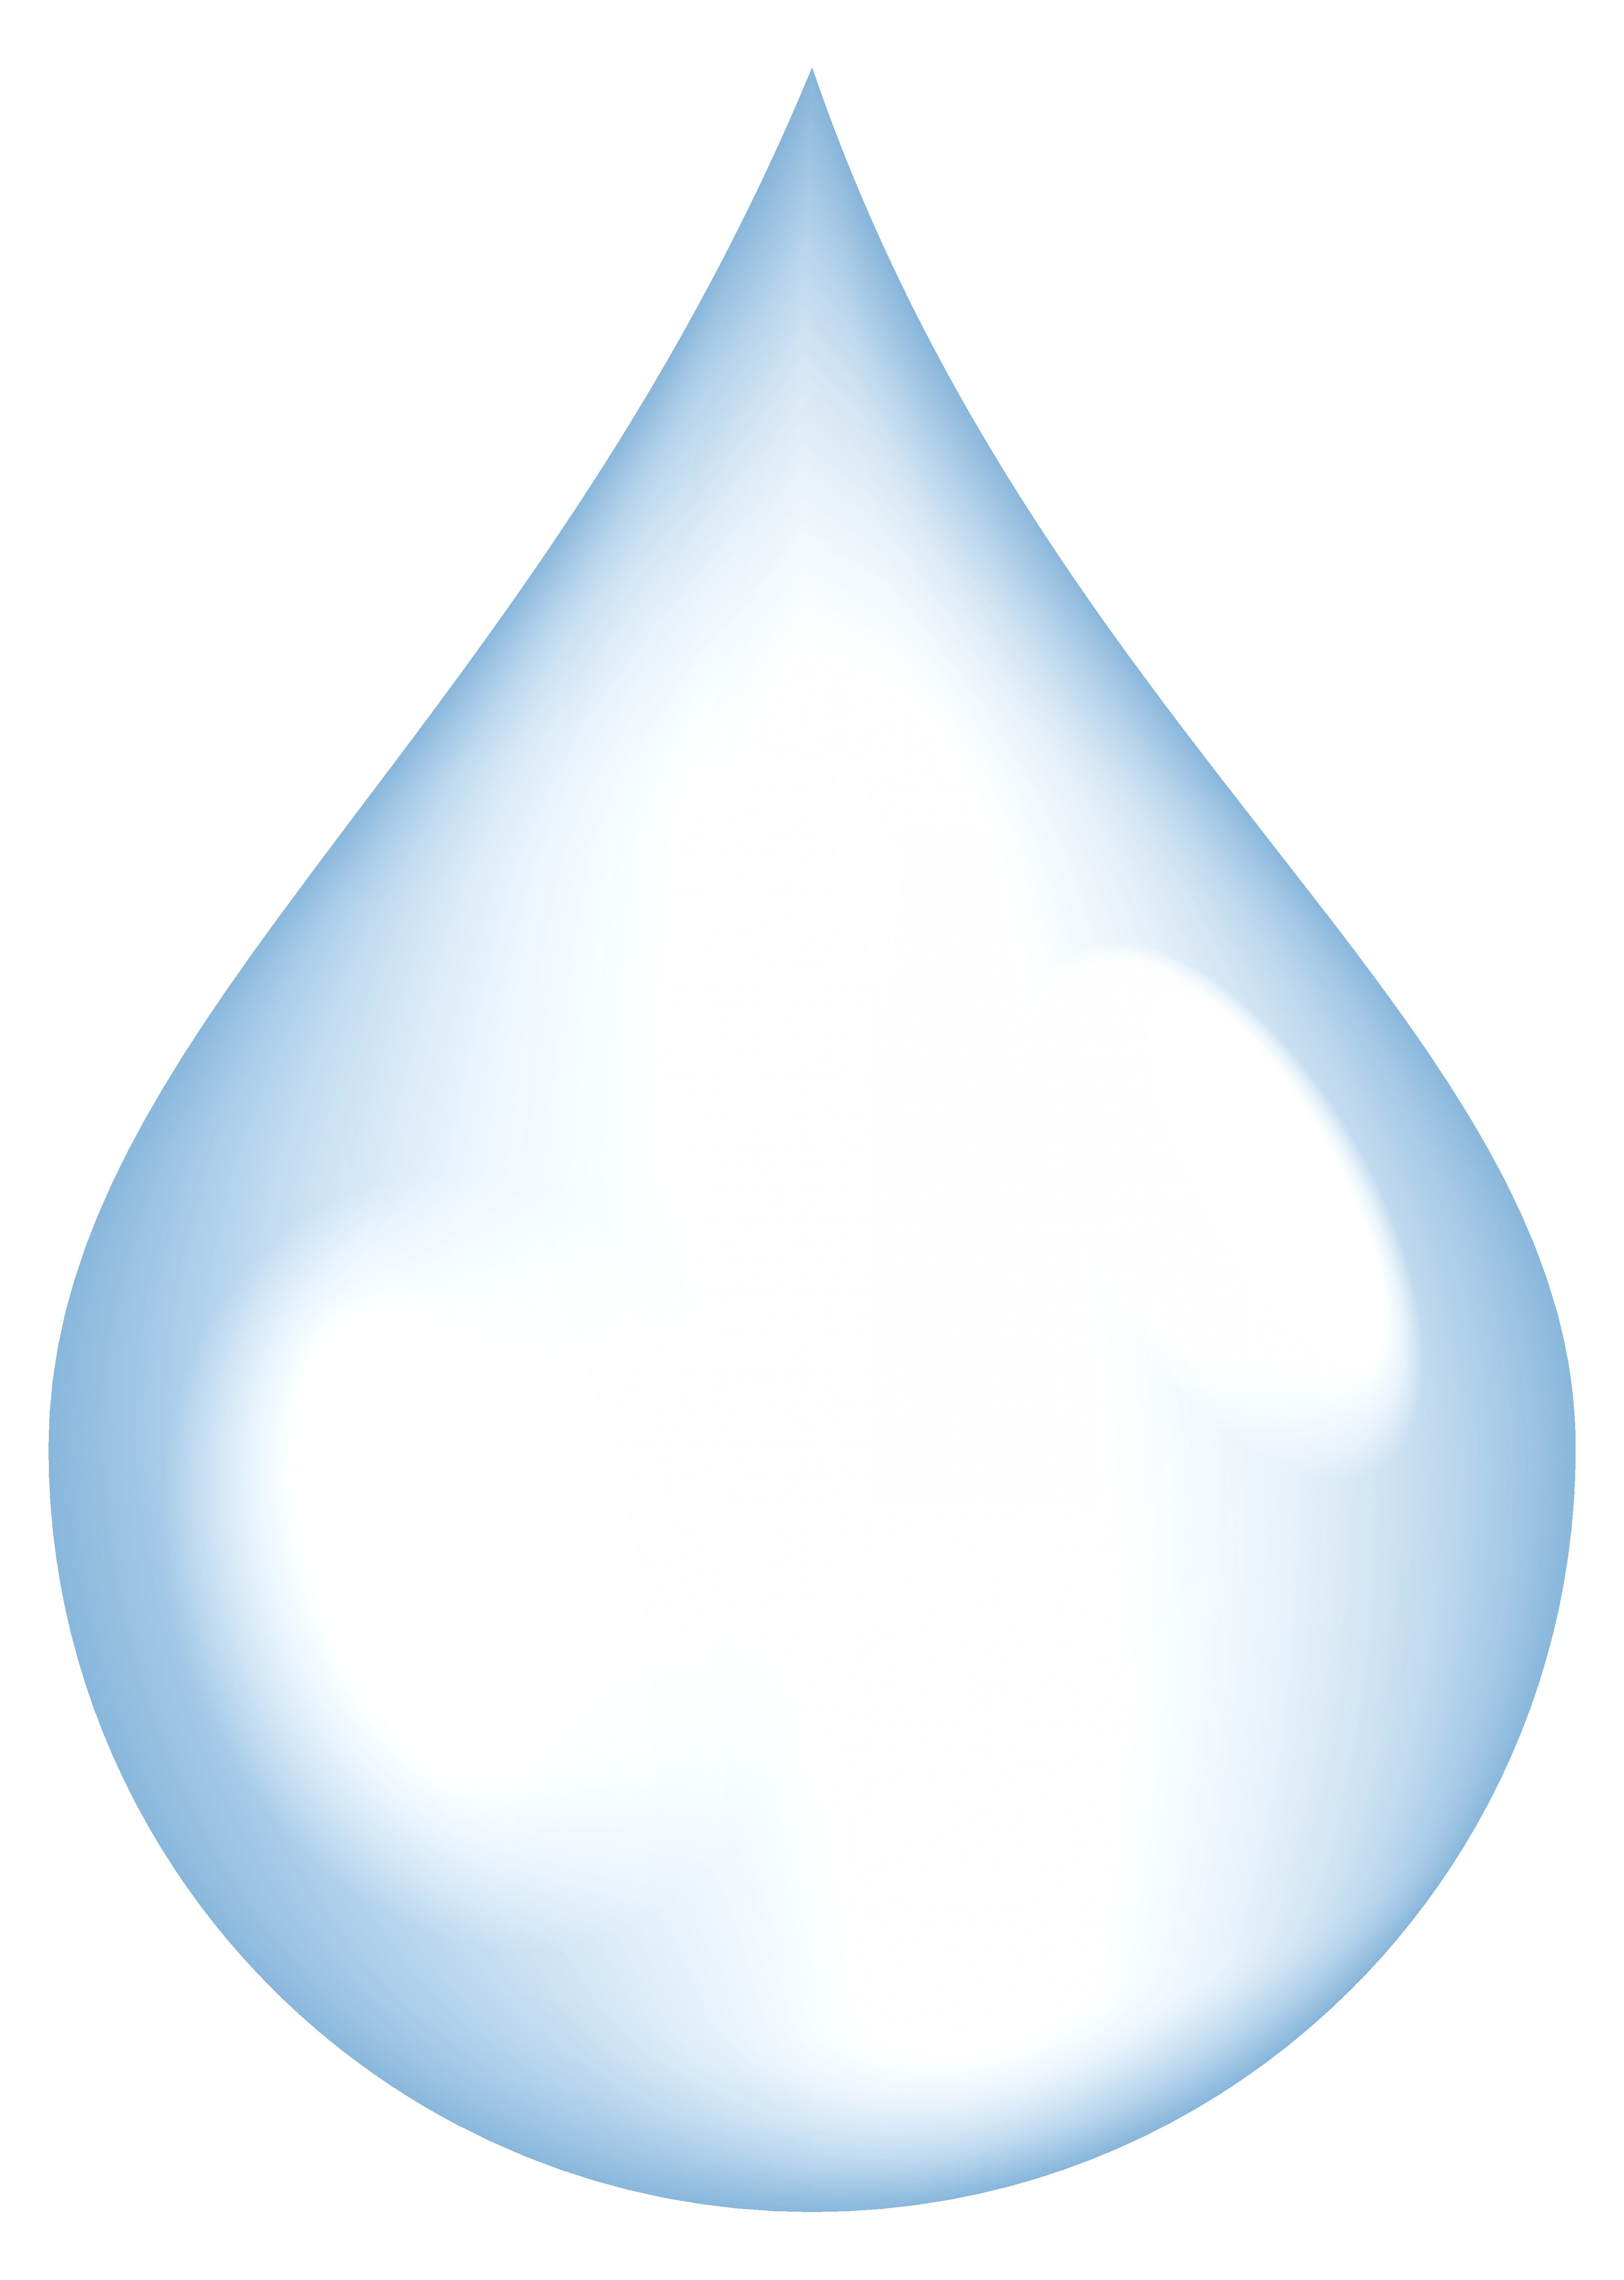 Vector Clip Art Of Water: Water Drop On A White Background Royalty Free Vector Clip Art Image Also Clipart Drip